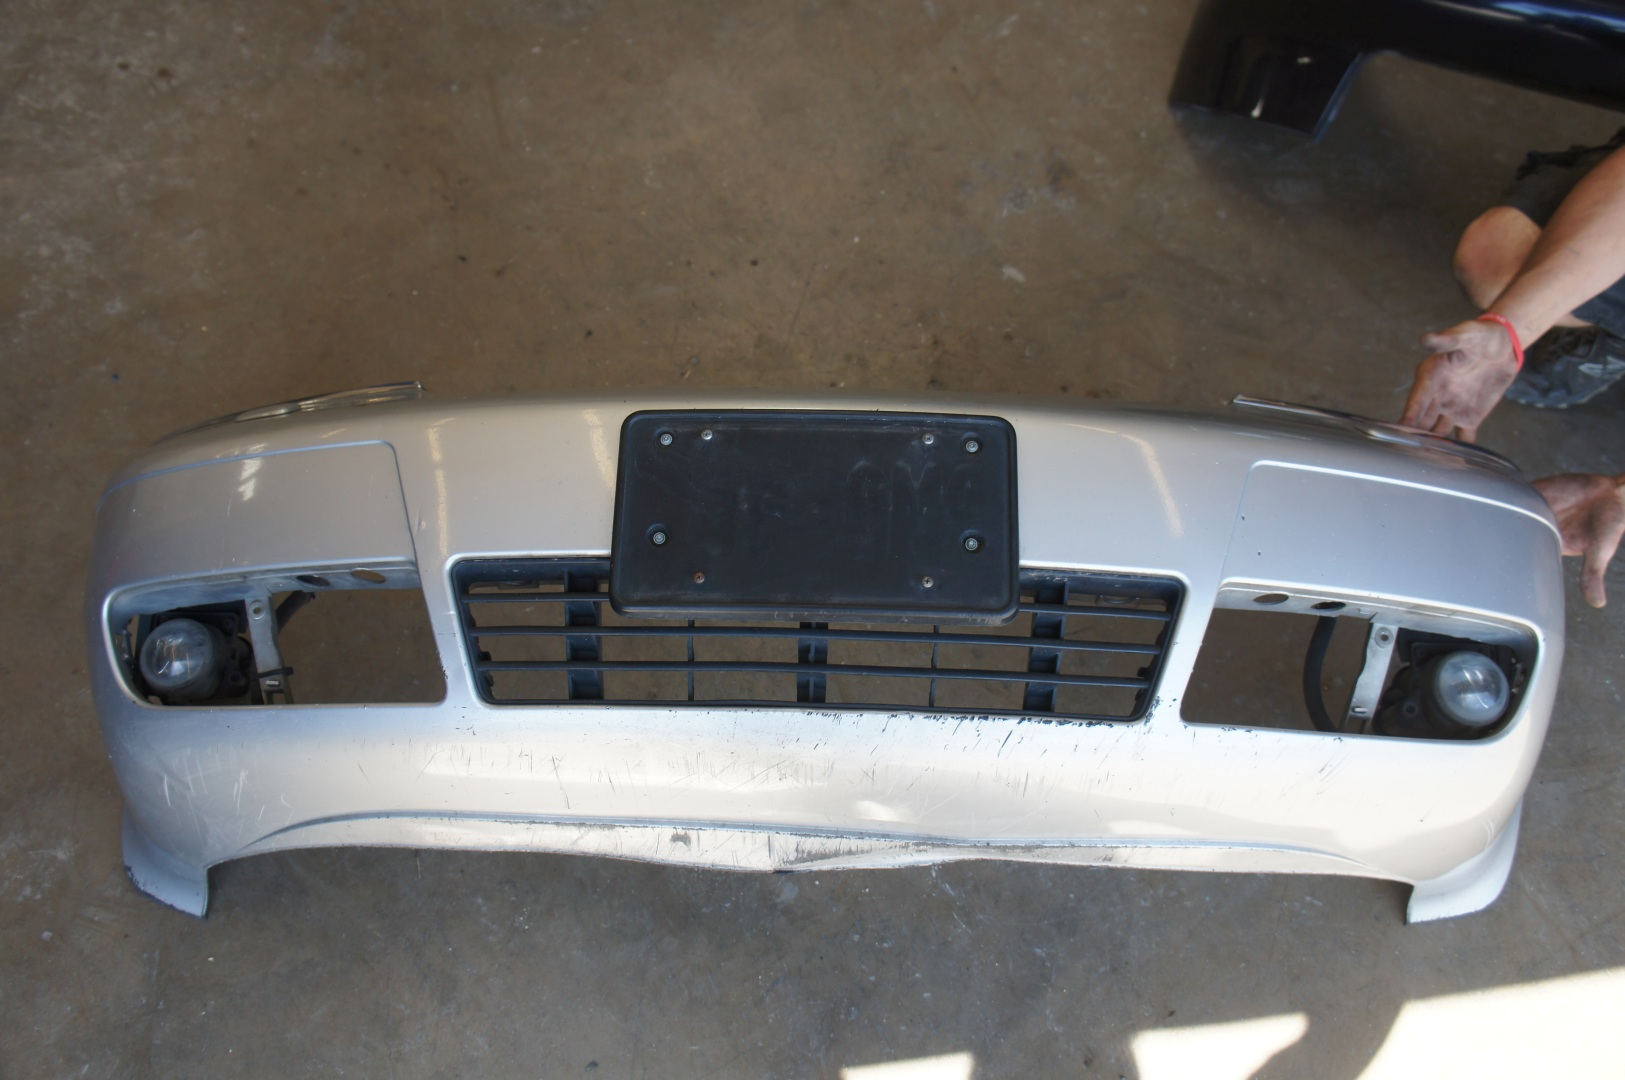 Used Audi A6 For Sale >> 98-01 Audi C5 A6 OEM Front Bumper Silver LY7W: Audis4parts.com